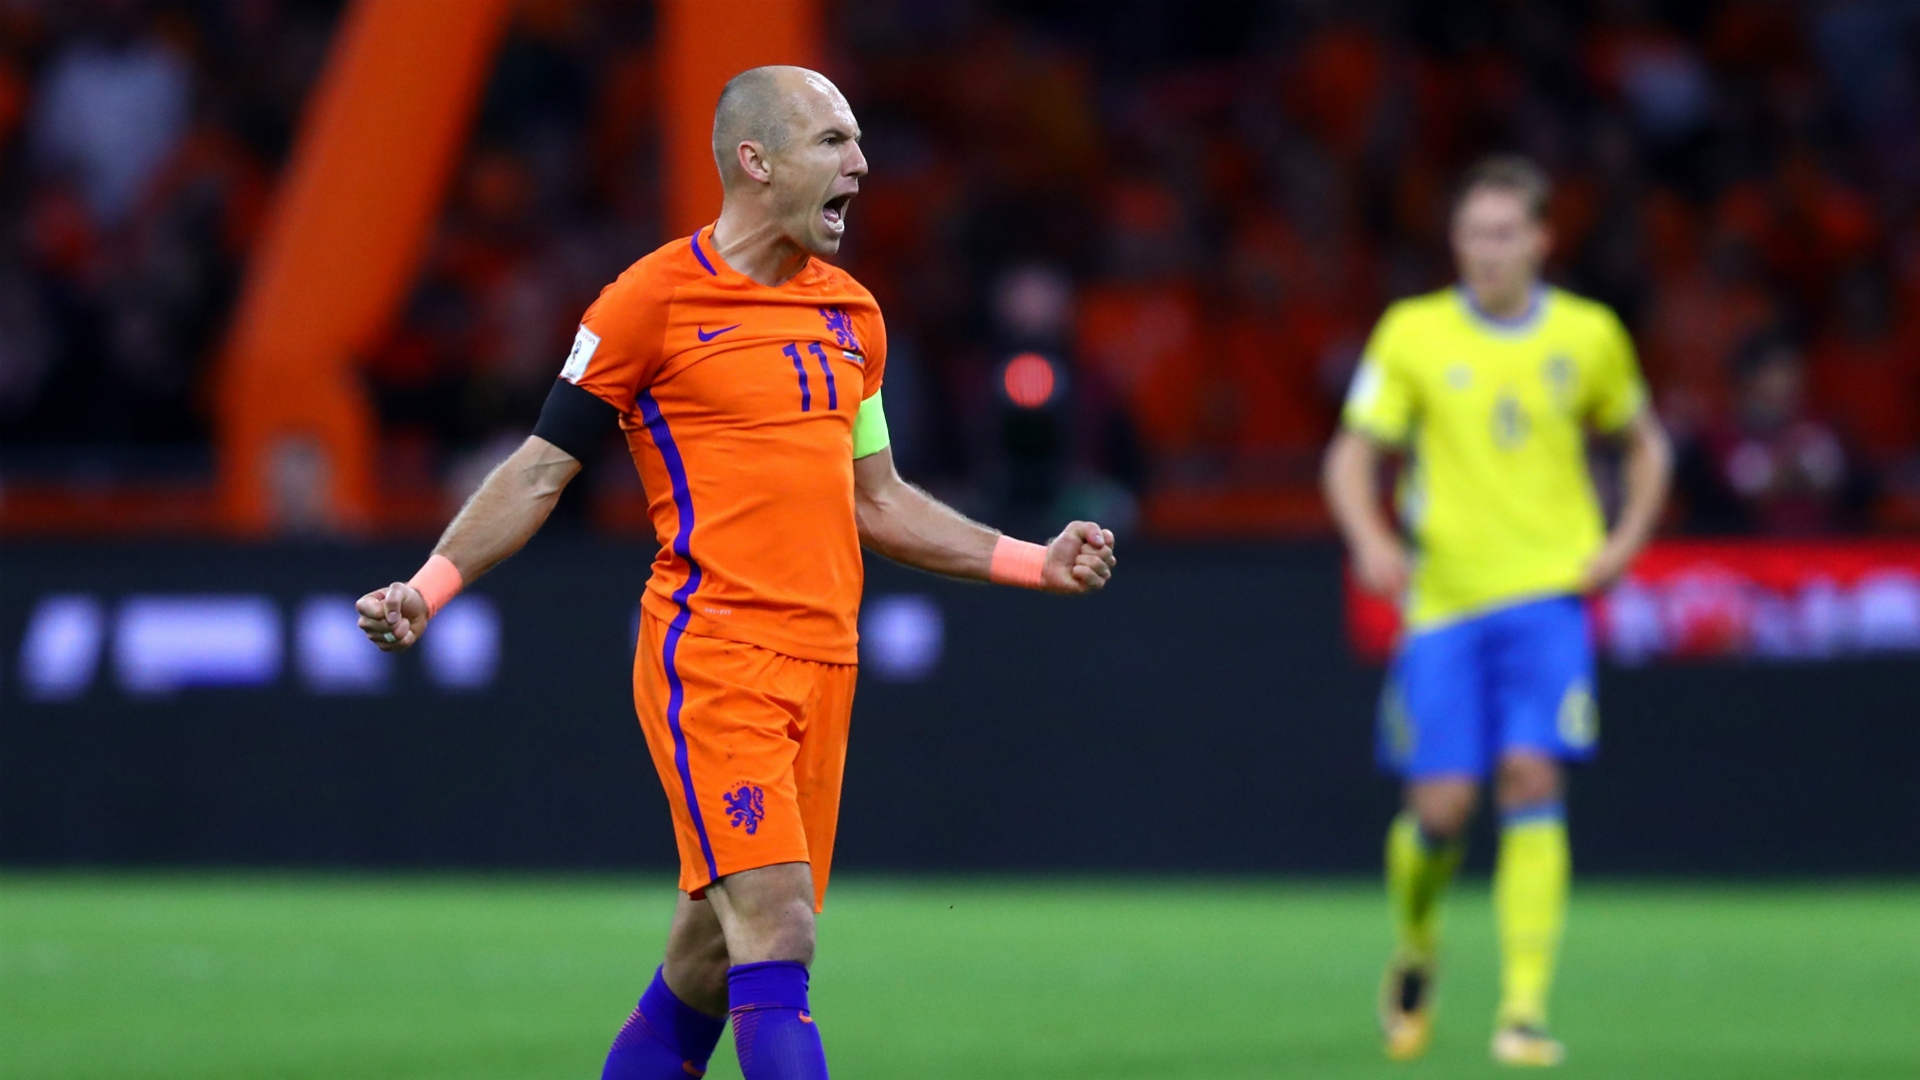 Playoff-bound Sweden beaten as Robben signs off in style for Dutch